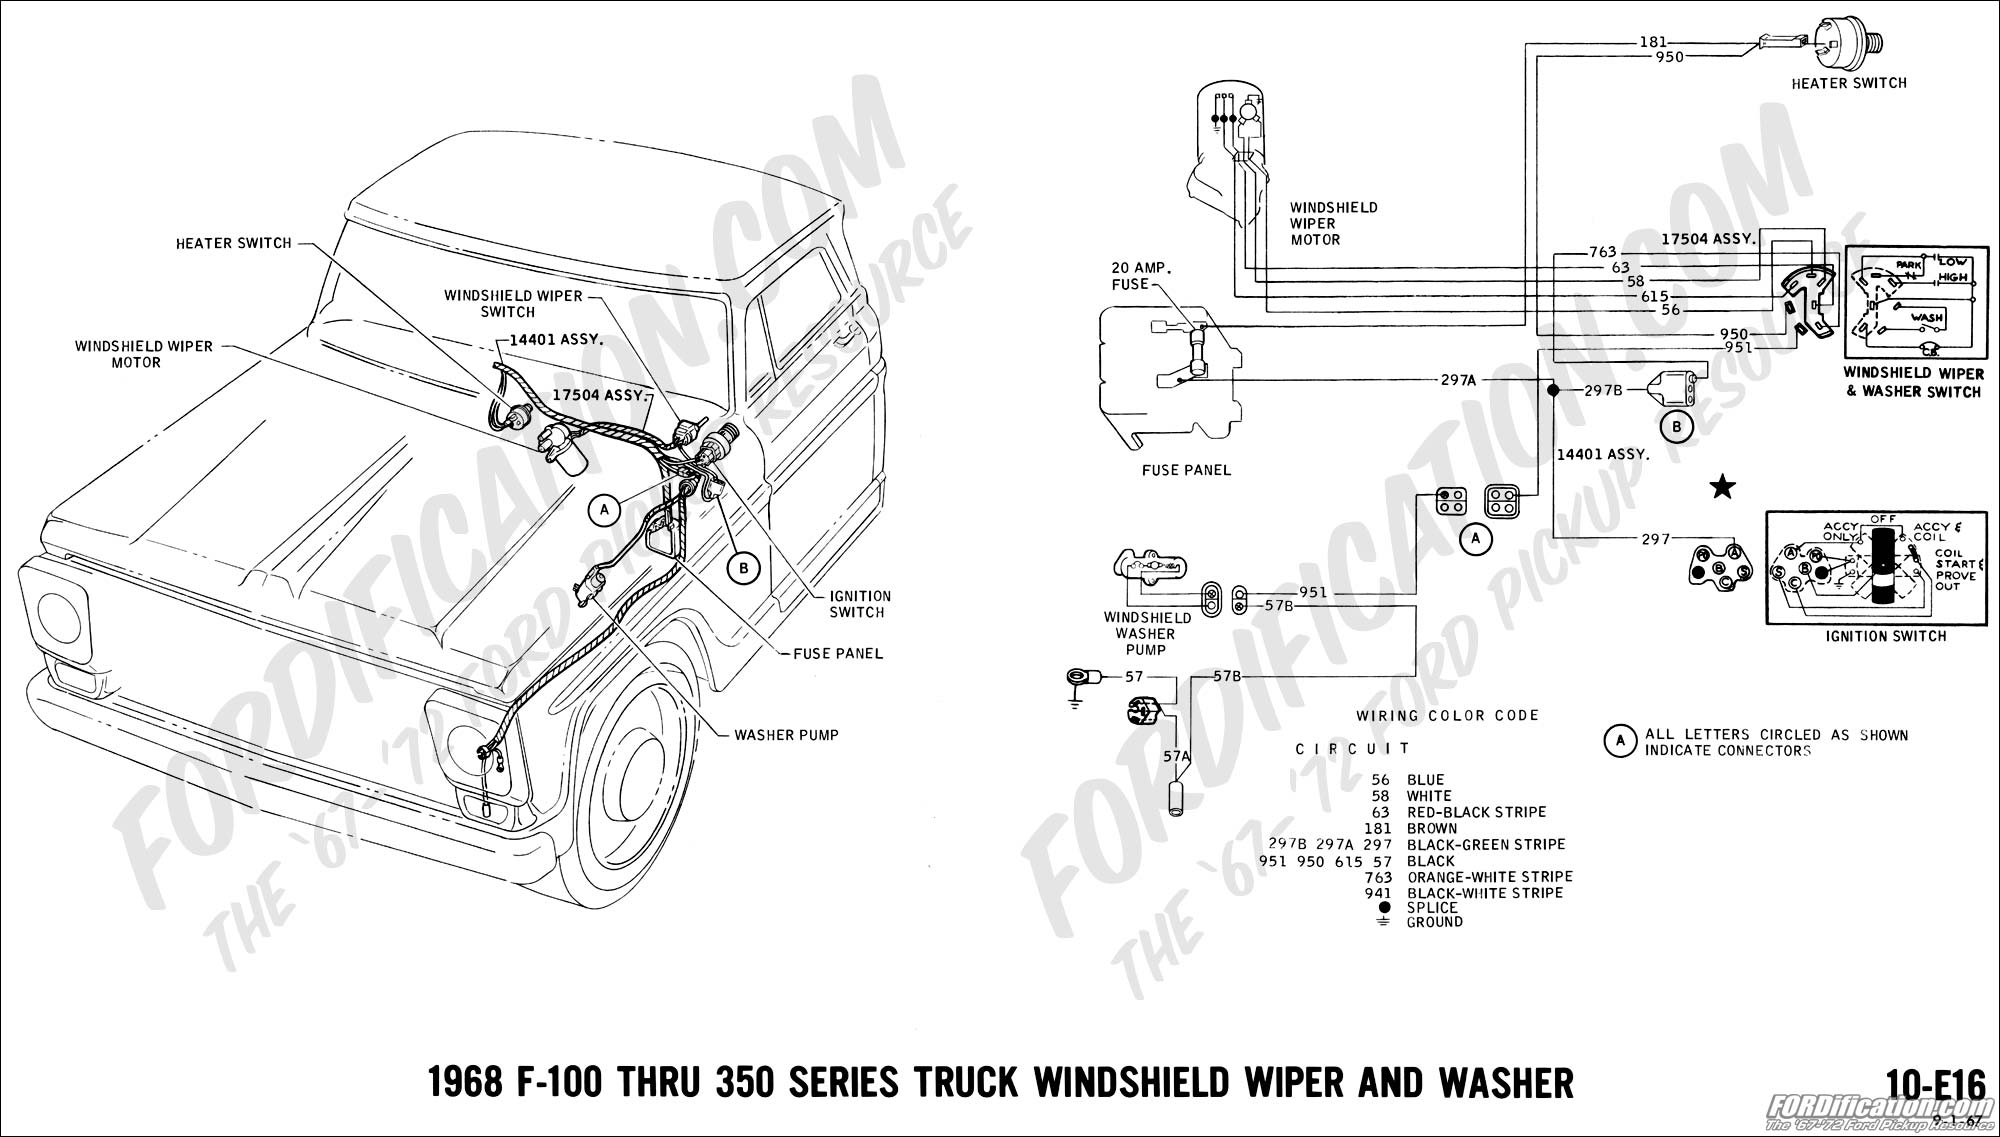 Topkick Washer Pump Wiring Diagram Library 1987 Toyota Truck Ford Technical Drawings And Schematics Section H